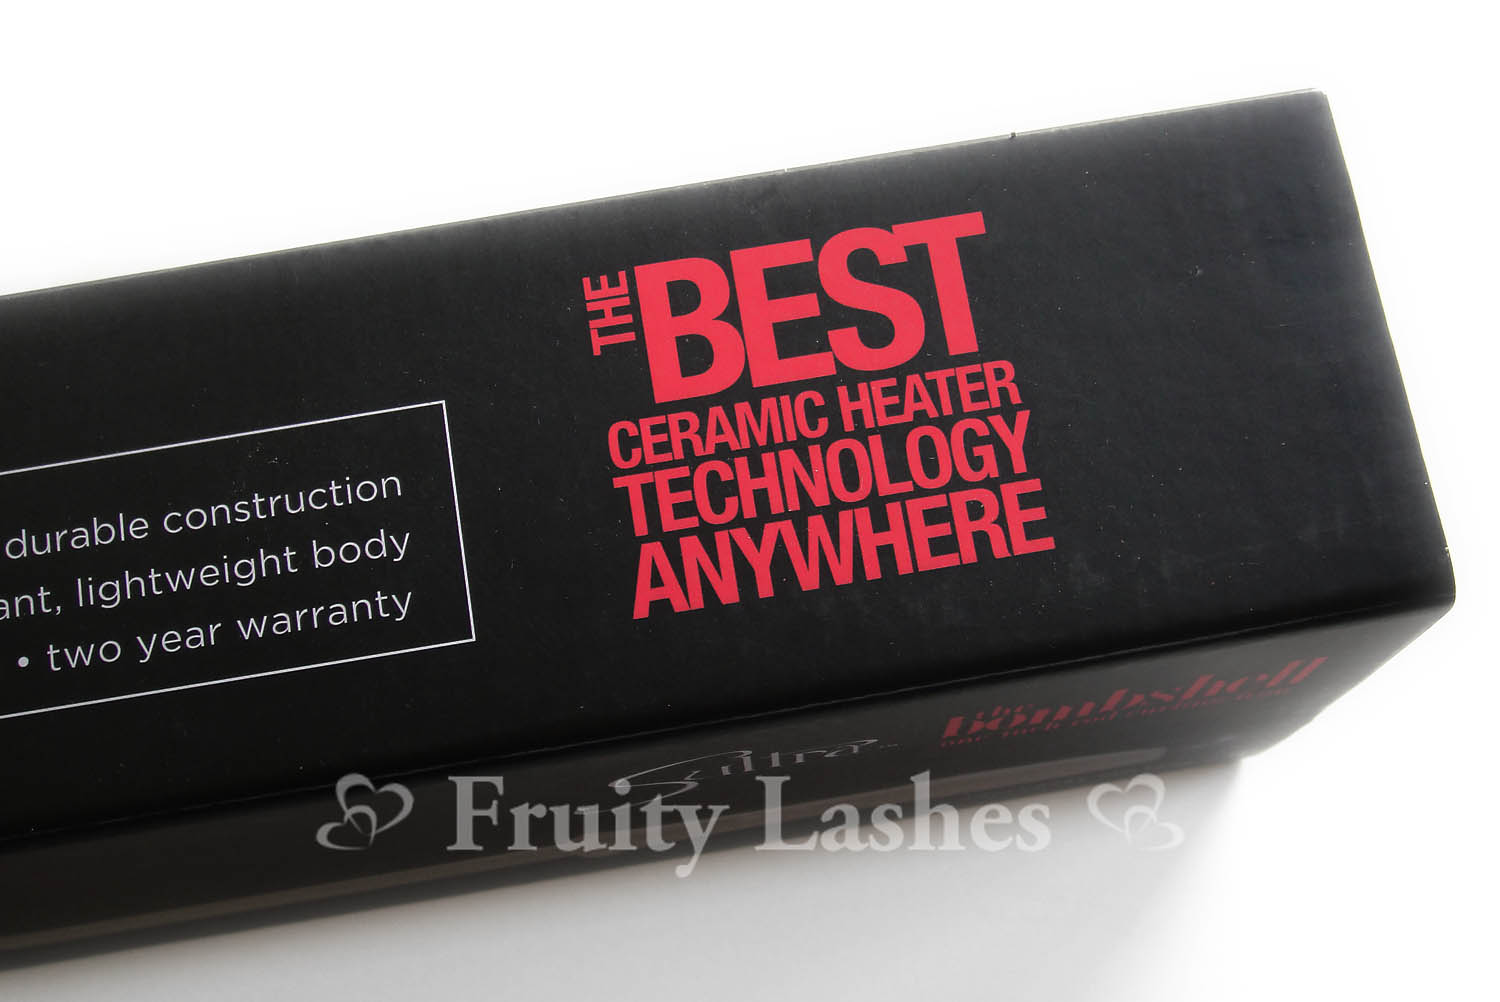 Sultra The Bombshell 1 Inch Rod Curling Iron Review